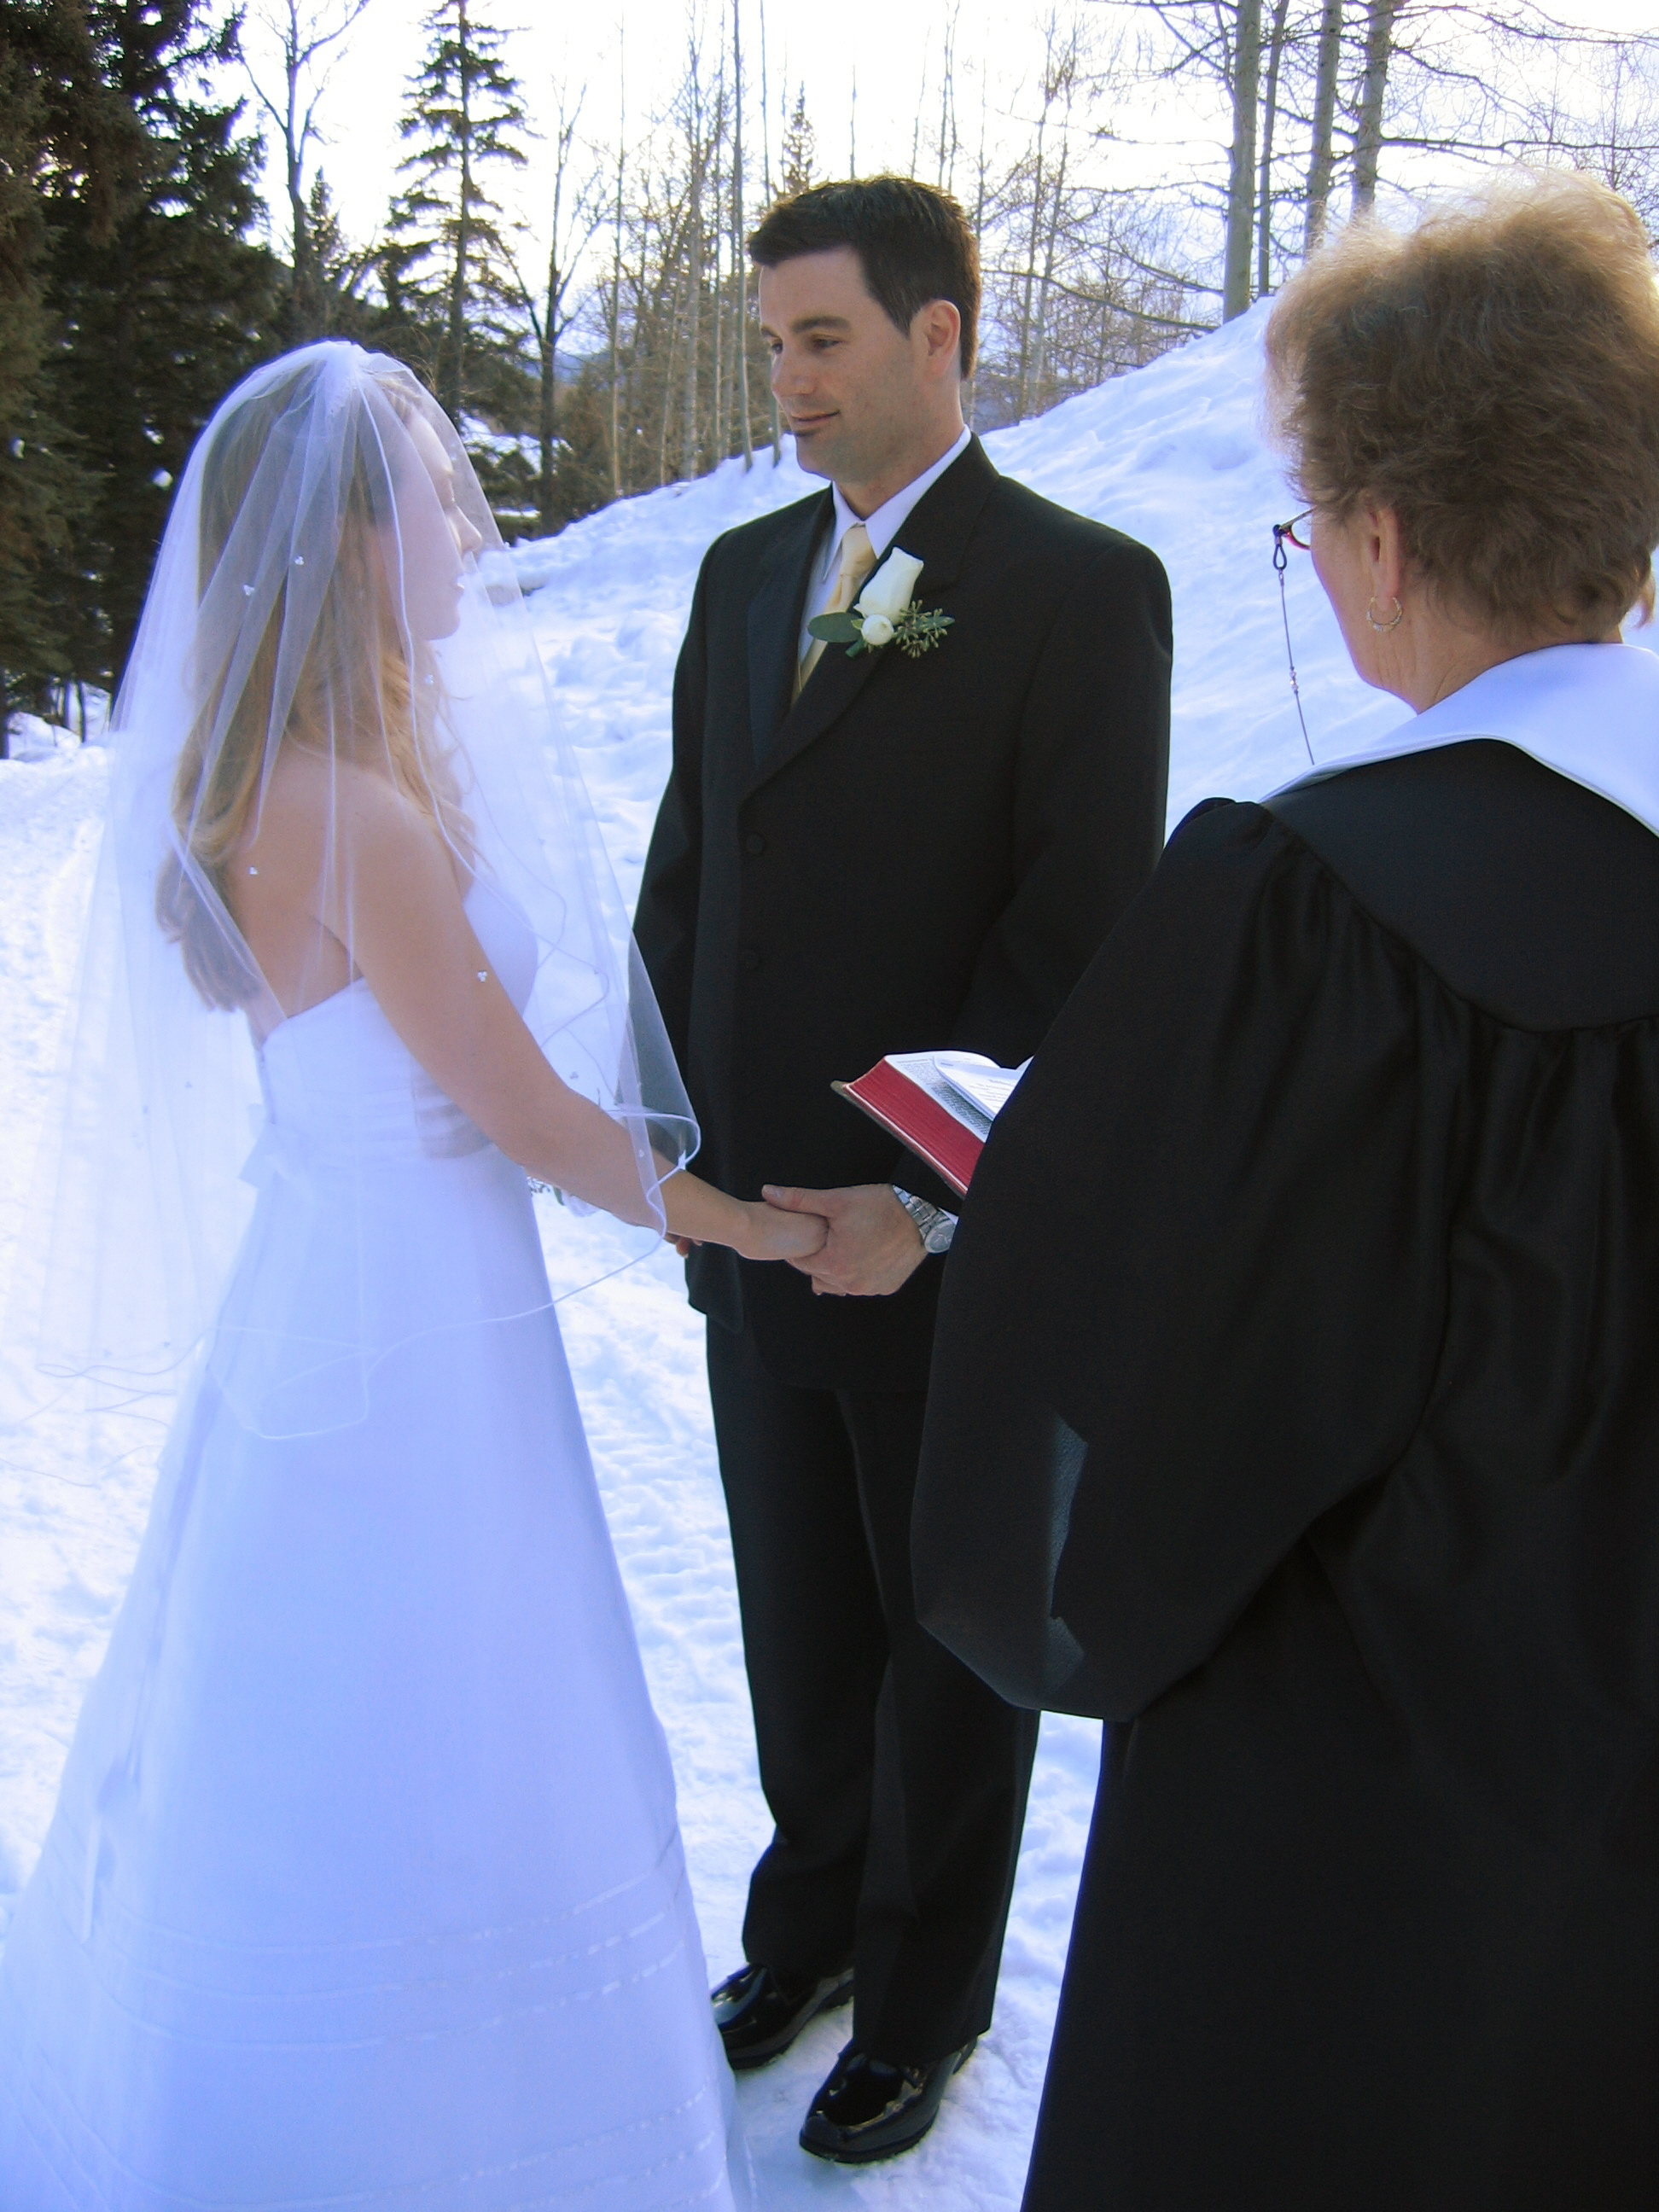 Destinations, Destination, Weddings, Resort, Vail, Elopements, etc llc